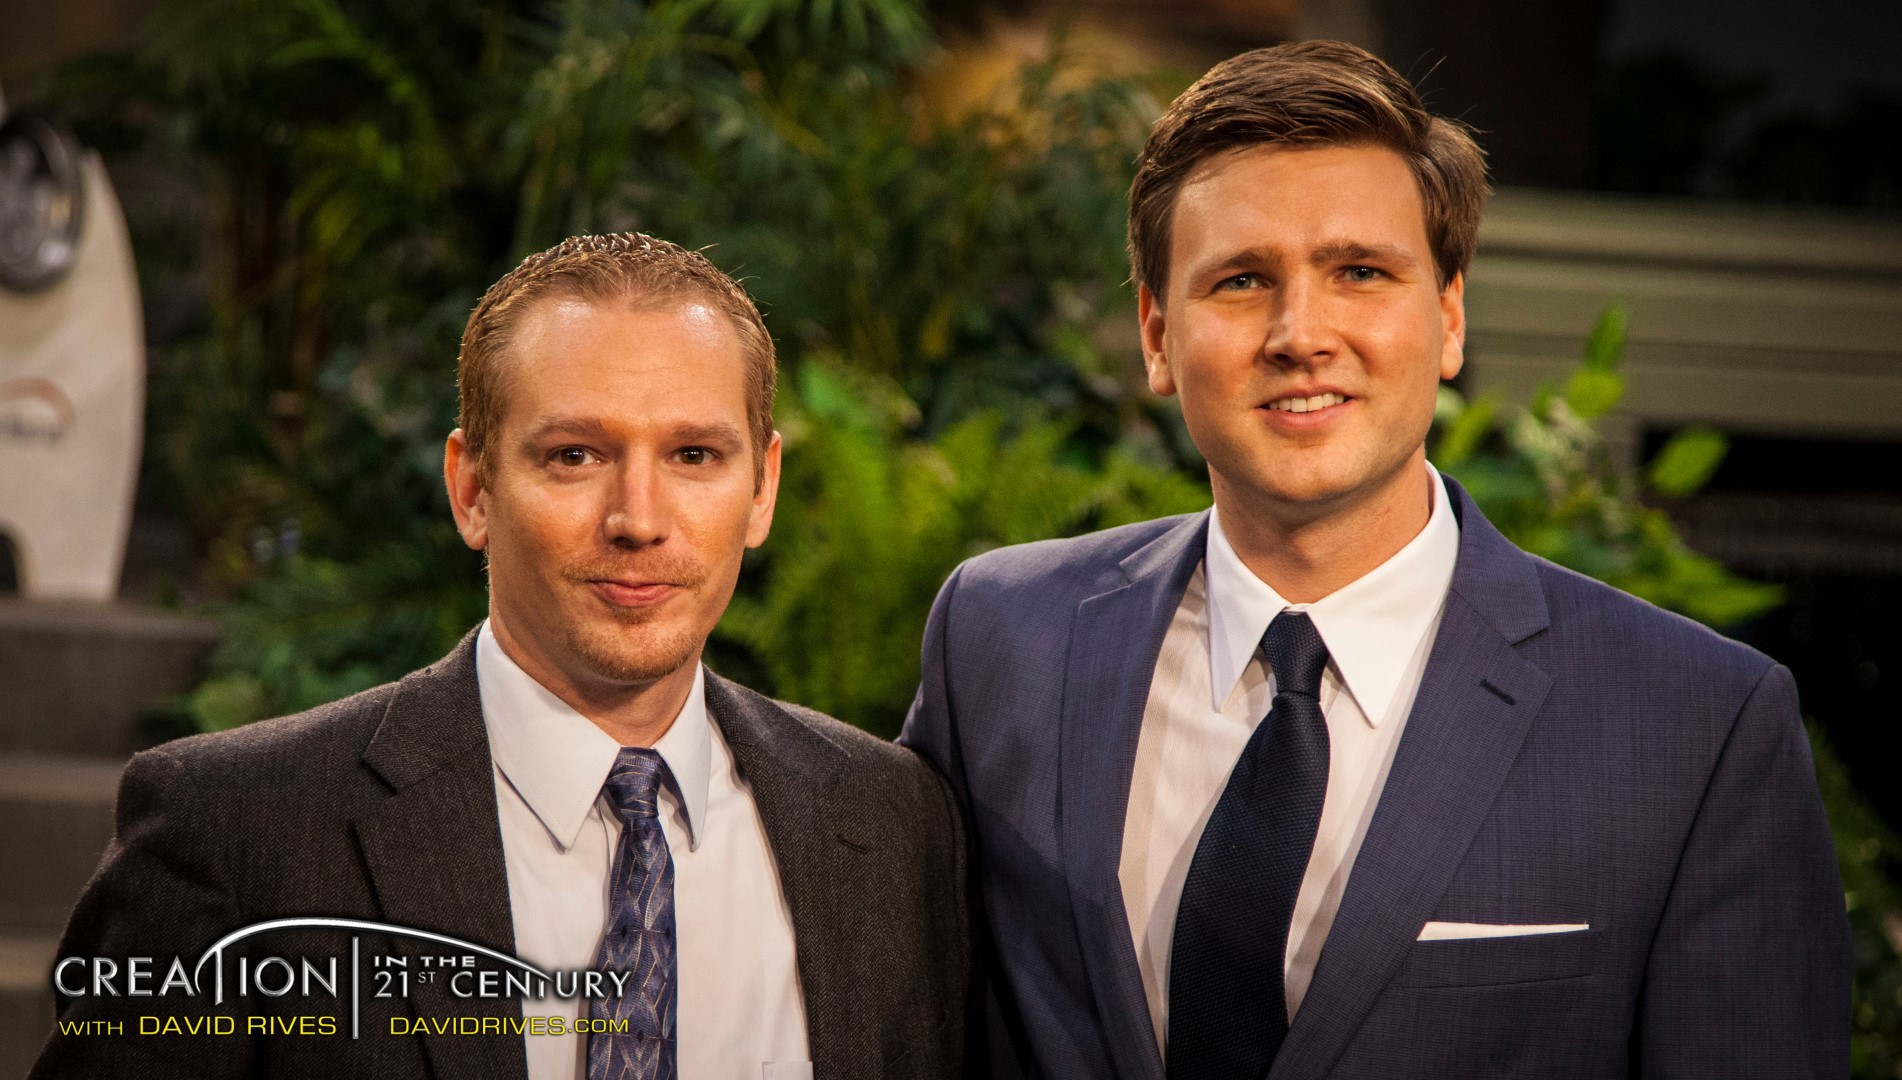 Creeping Things of Creation – With David Rives and Nathan Hutcherson on TBN